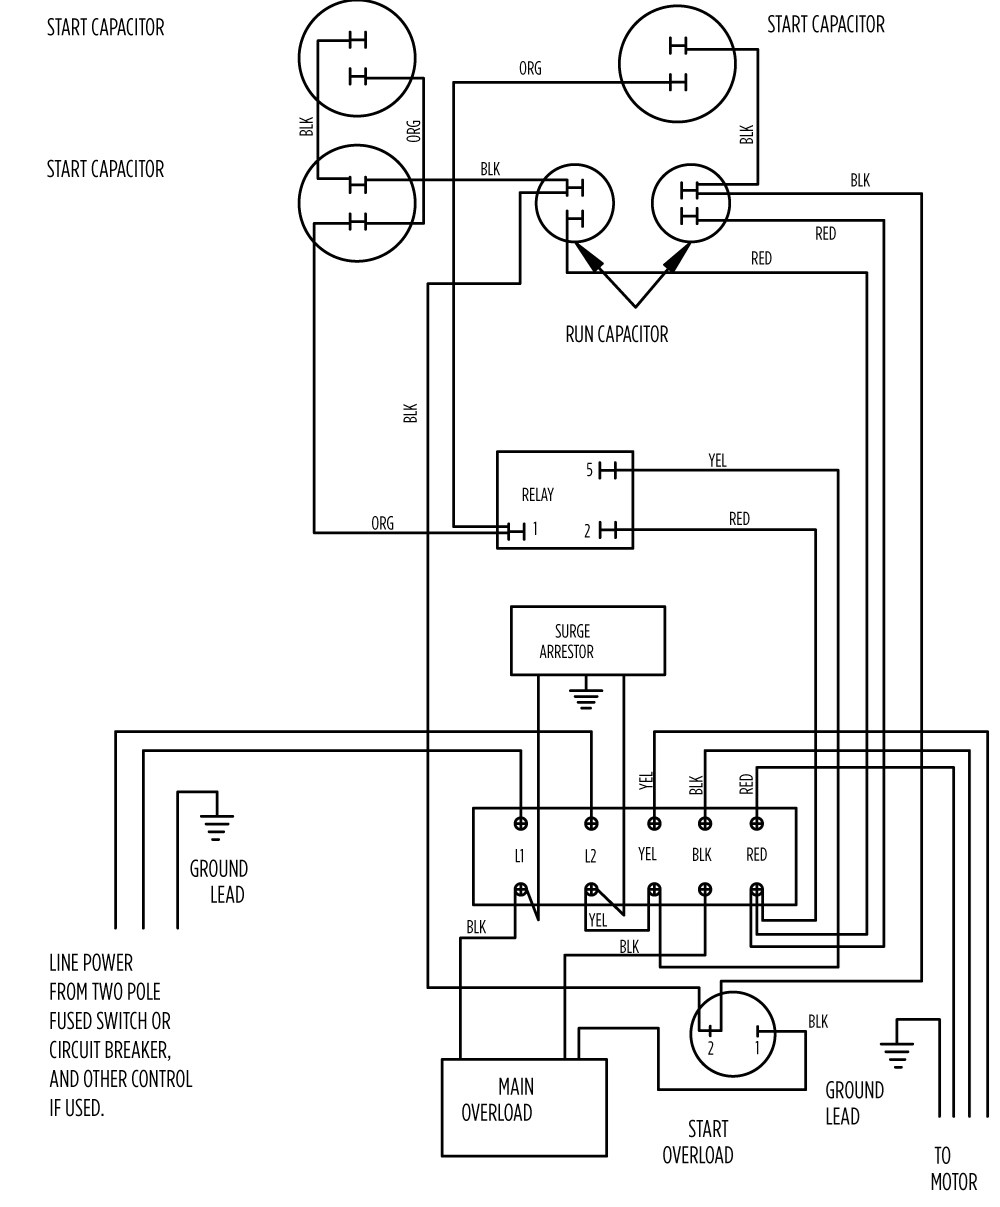 10 hp standard 282 202 9210 or 282 202 9230_aim gallery?format=jpg&quality=80 aim manual page 57 single phase motors and controls motor motor wiring schematic plate at reclaimingppi.co